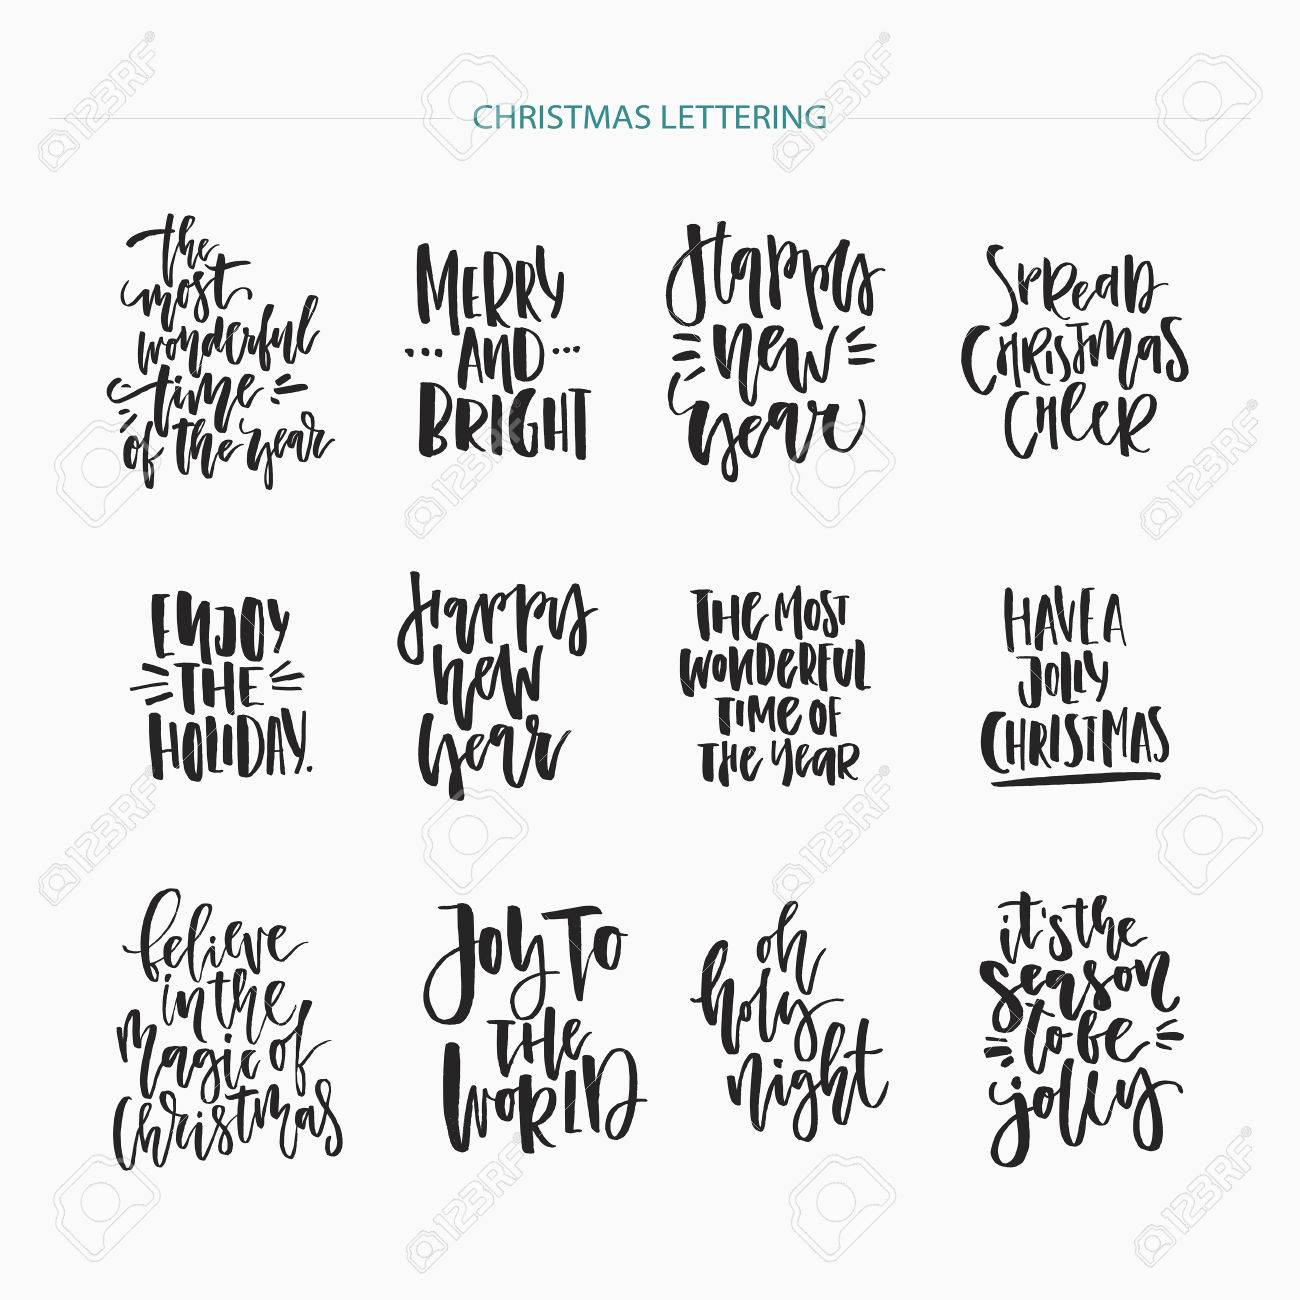 christmas lettering collection unique handdrawn phrases for christmas and new year invitations and greeting cards